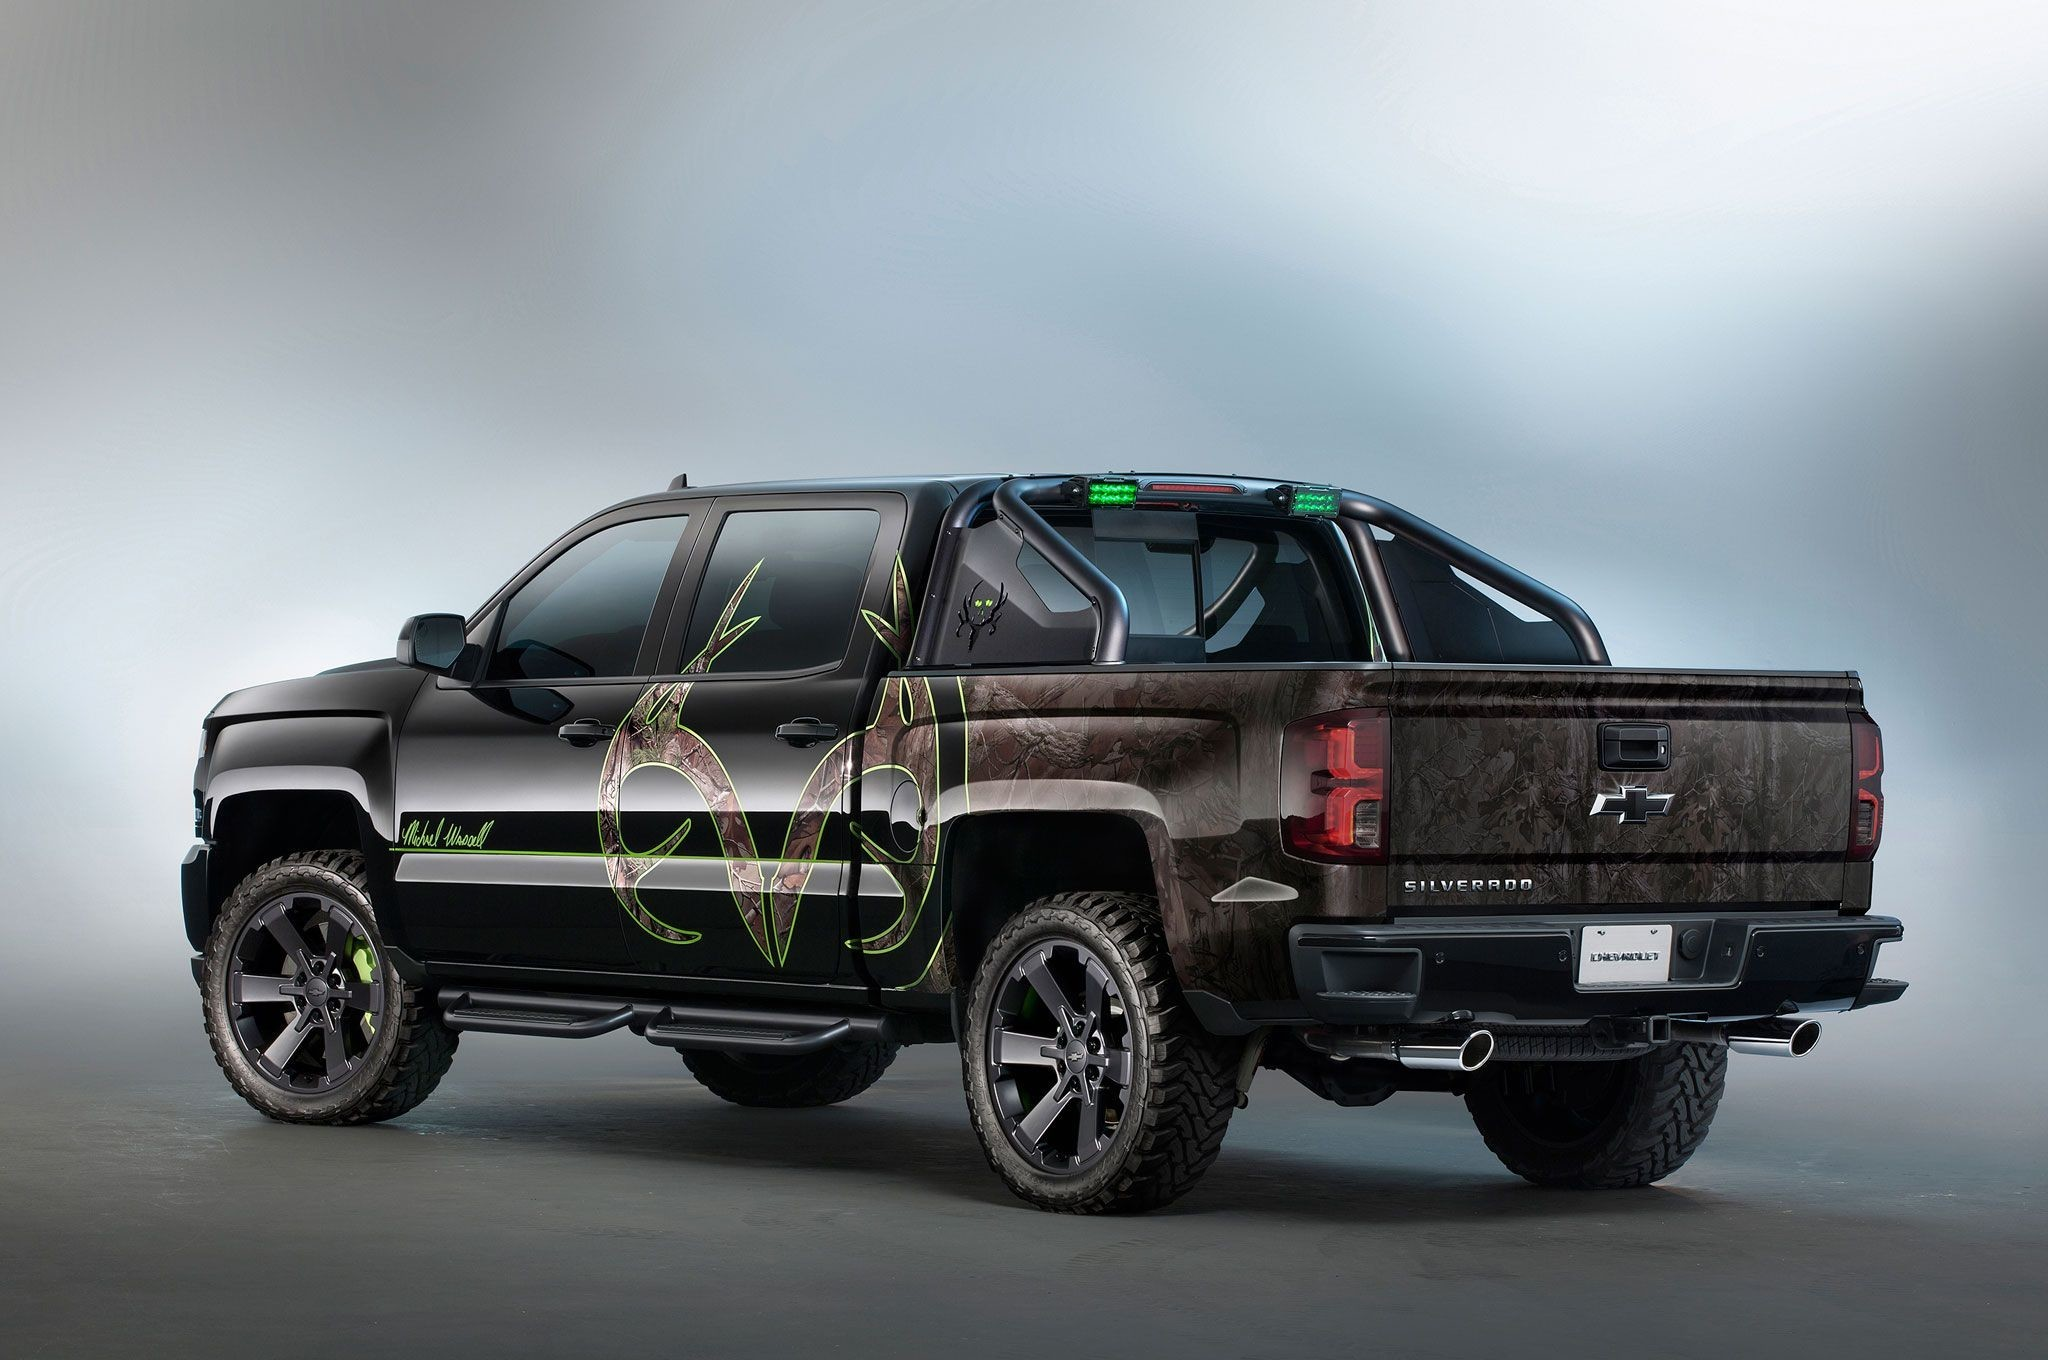 Chevy Silverado Wallpapers 70 Background Pictures